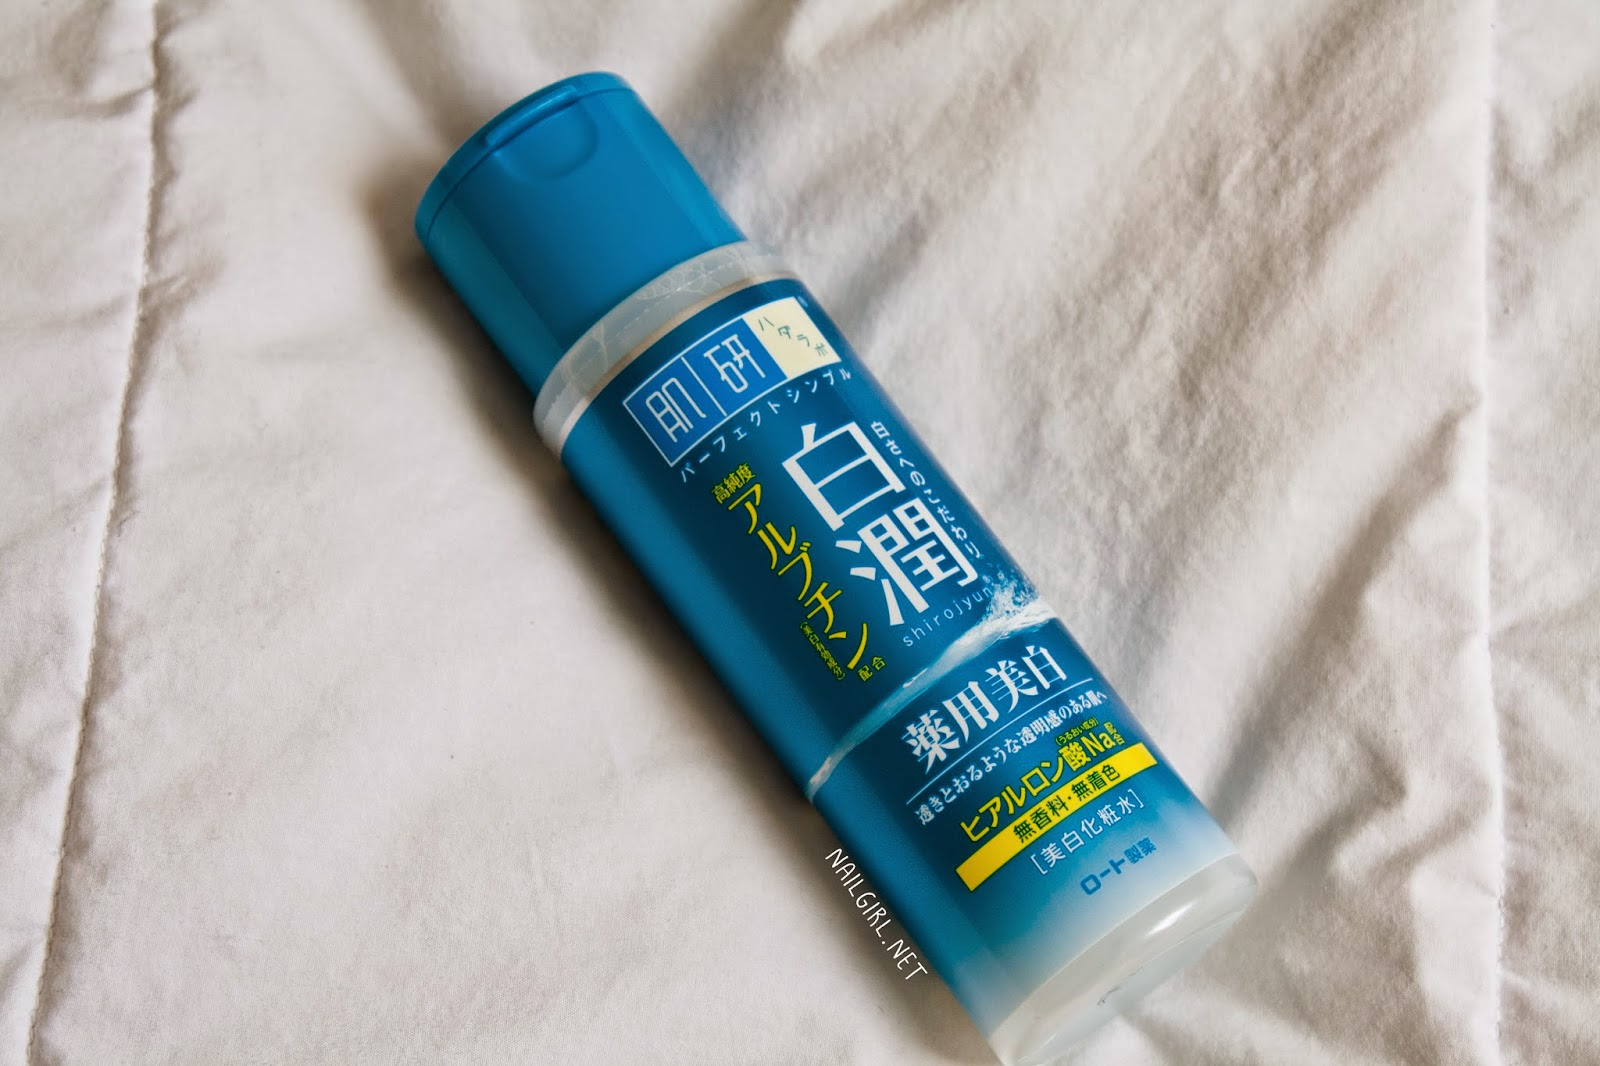 hada labo shirojyun lotion bottle